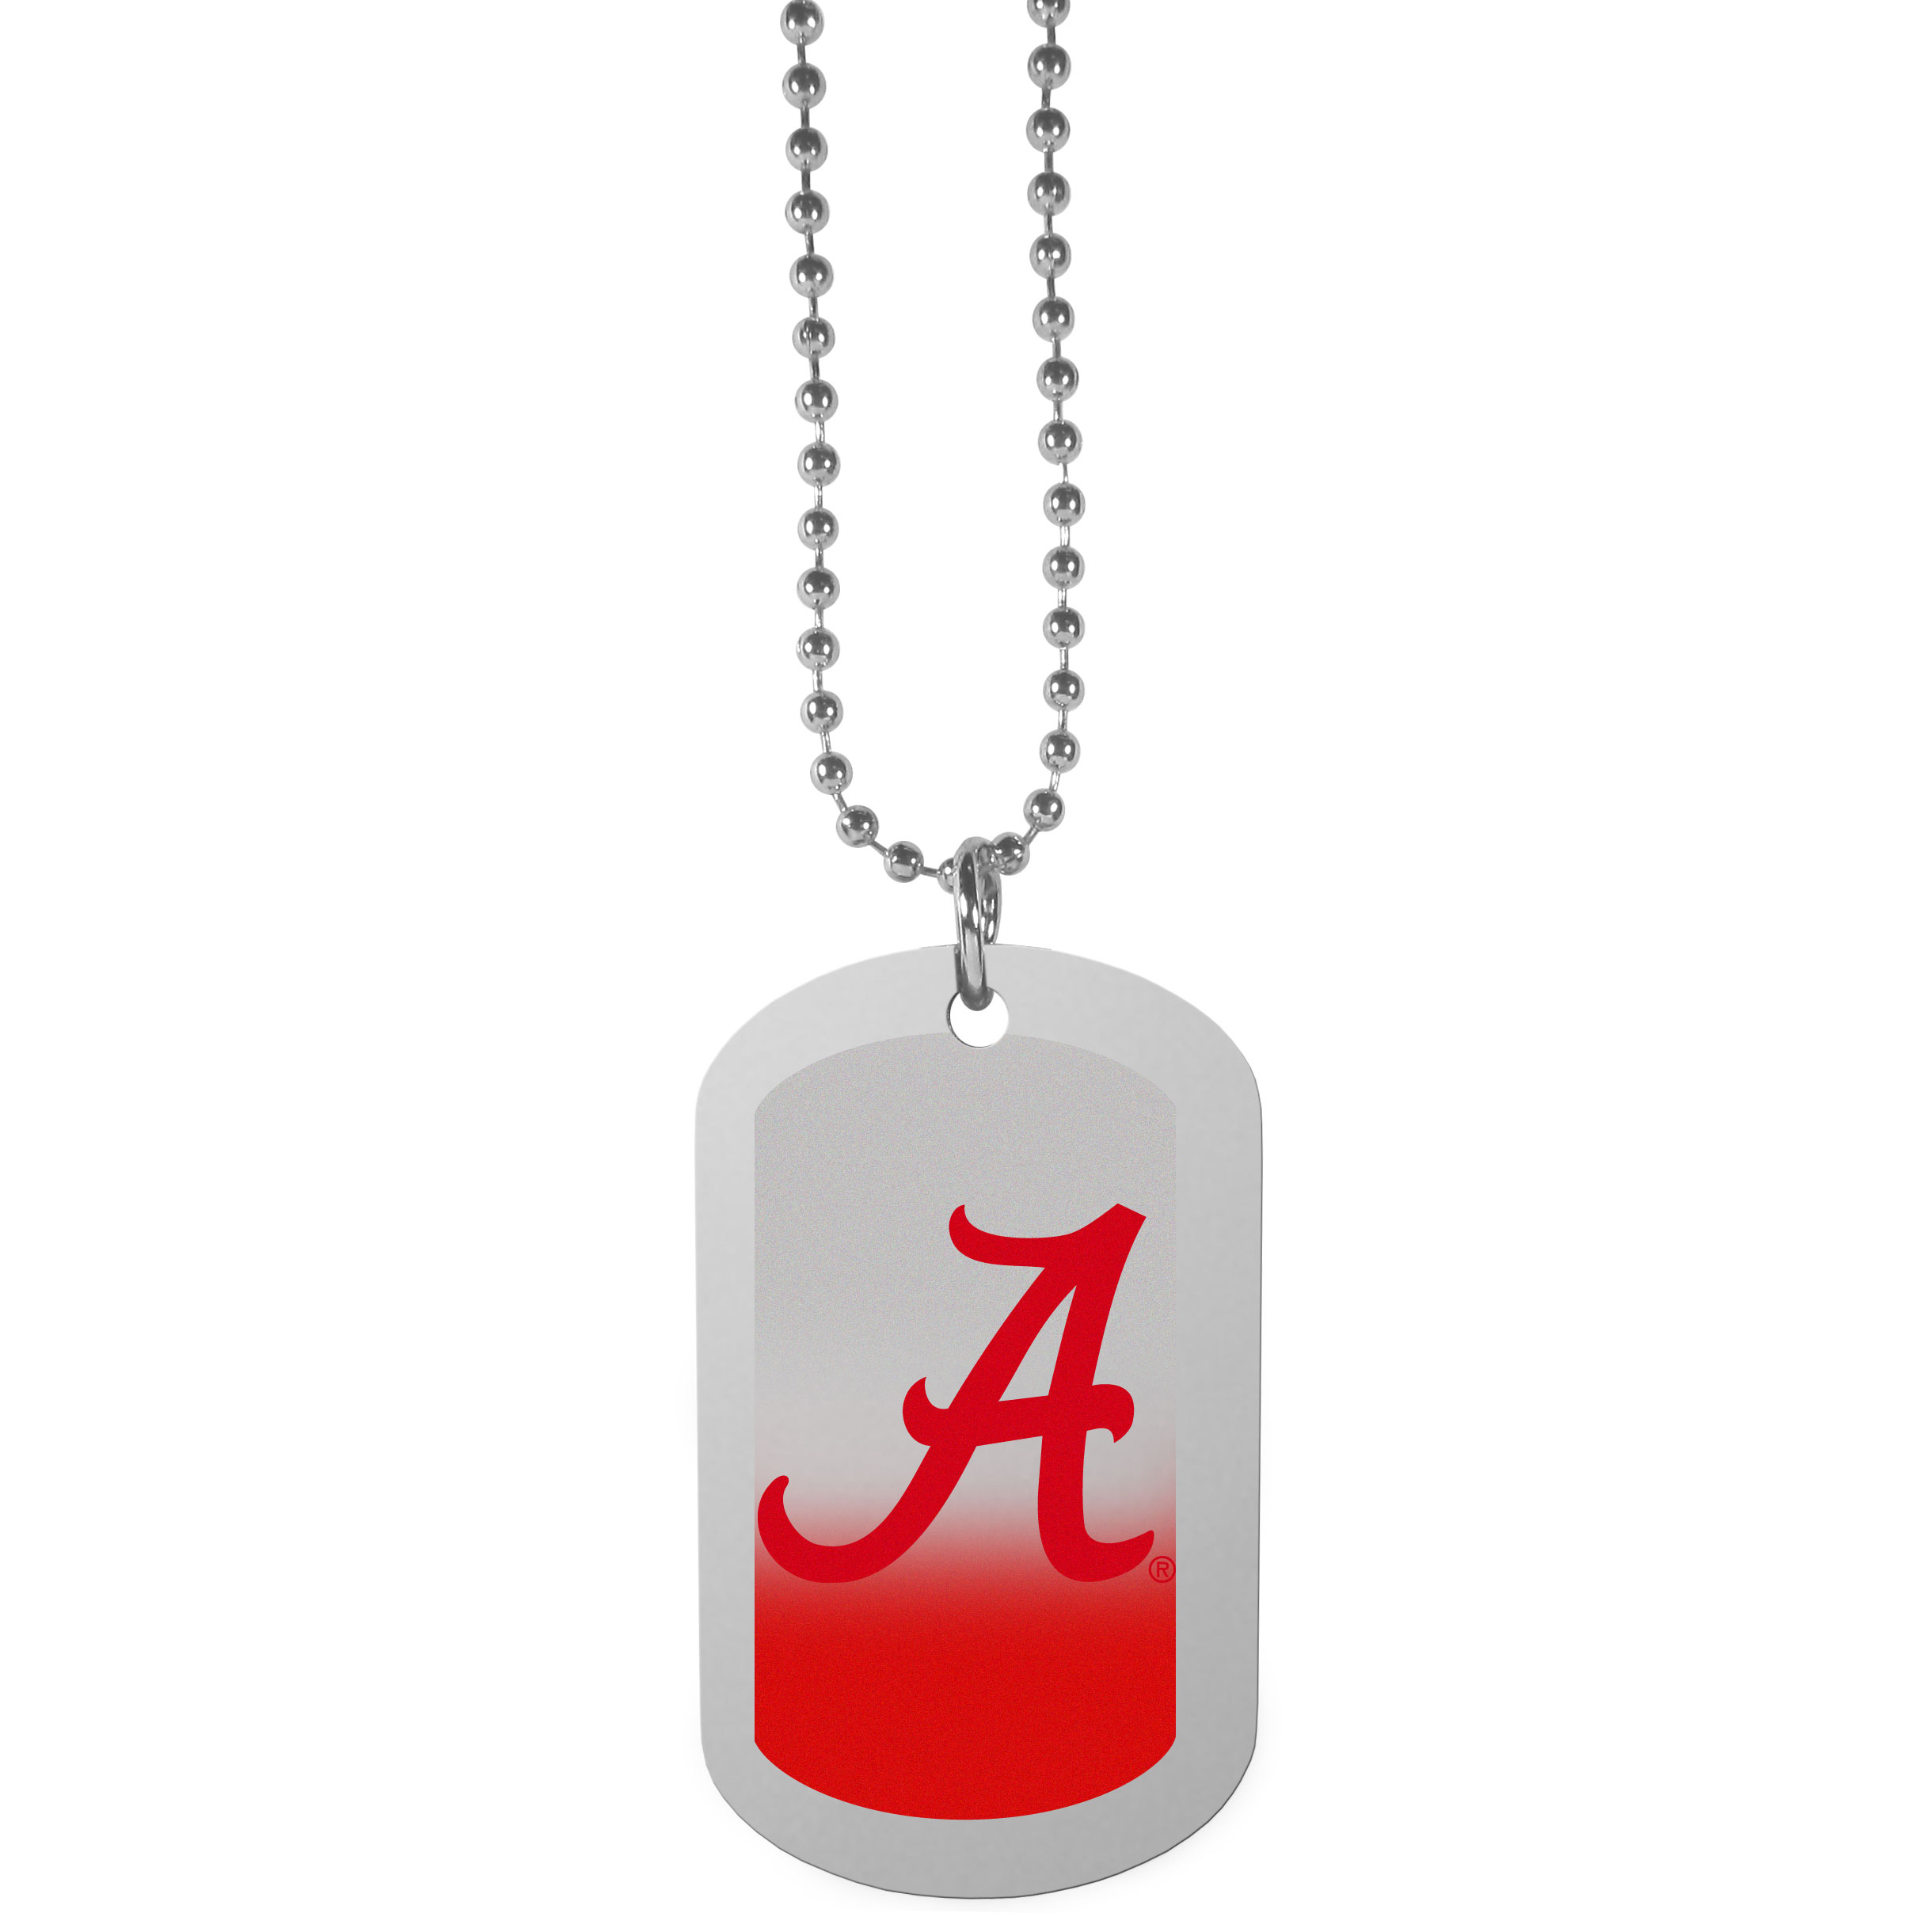 Alabama Crimson Tide Team Tag Necklace - Dog tag necklaces are a fashion statement that is here to stay. The sporty version of the classic tag features a gradient print in team colors featuring a full color team logo over a high polish tag to create a bold and sporty look. The tag comes on a 26 inch ball chain with a ball and joint clasp. Any Alabama Crimson Tide would be proud to wear this attractive fashion accessory.